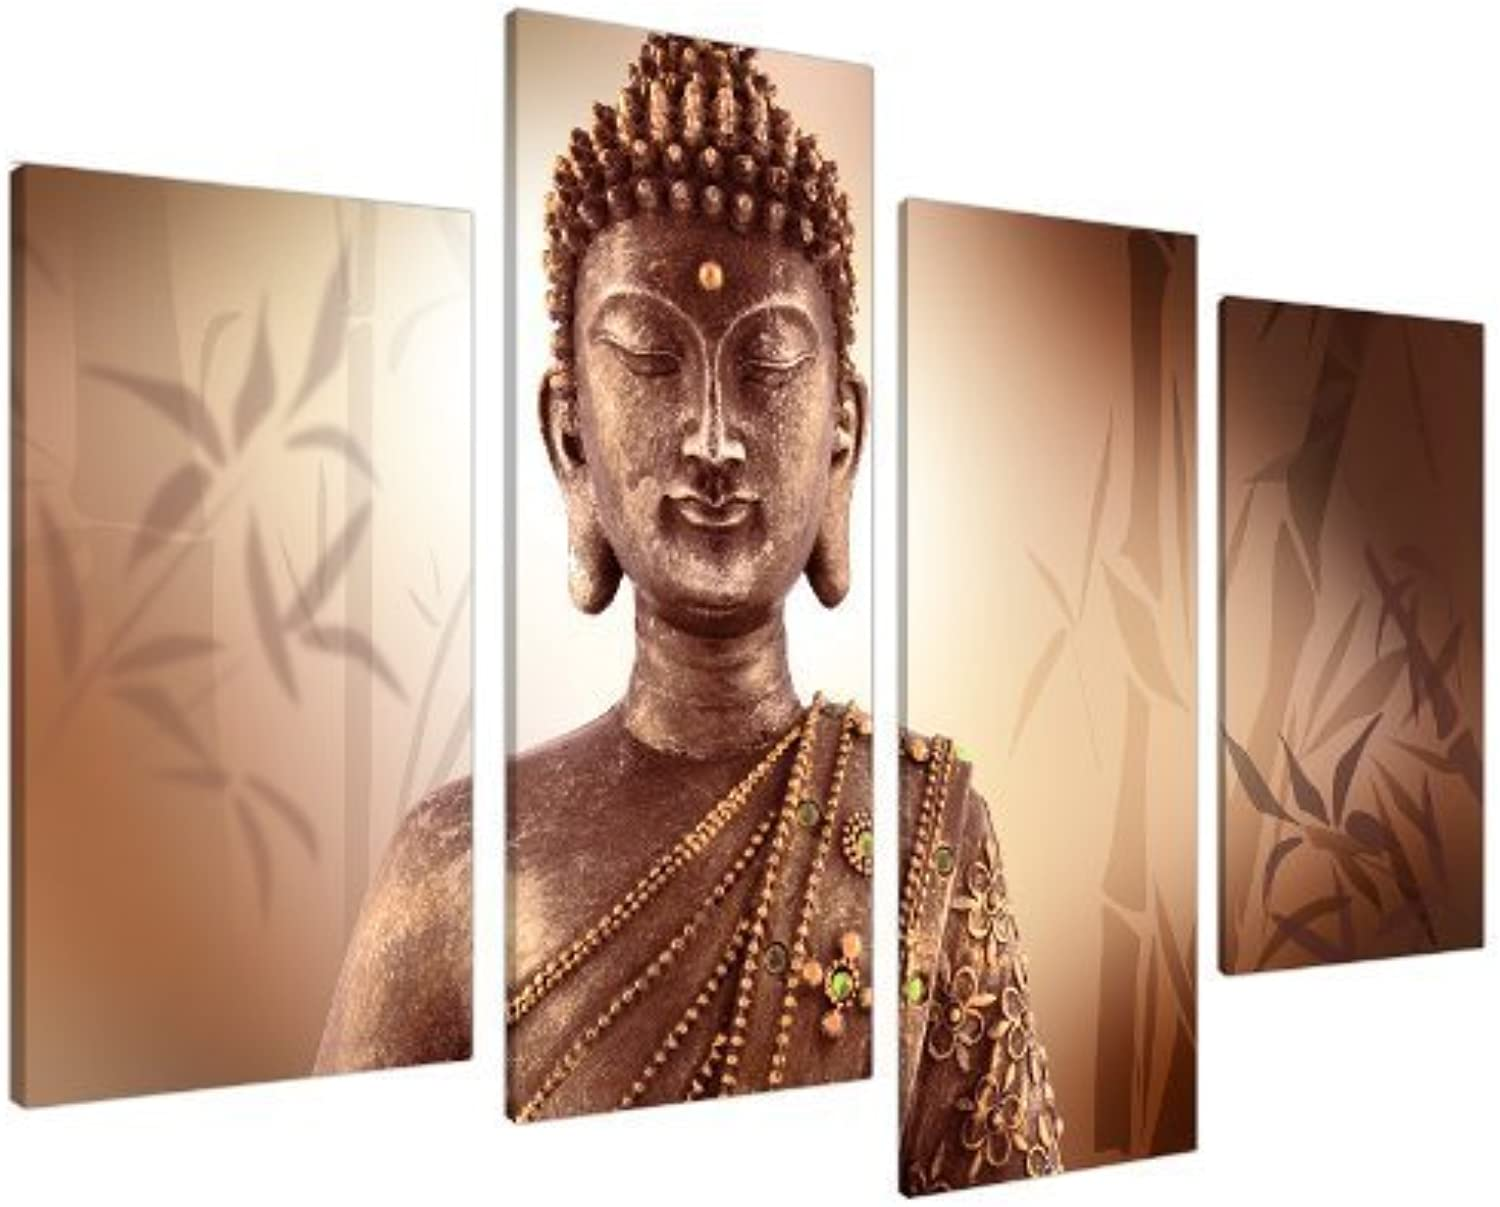 Large Brown Buddha Split Canvas Wall Art Pictures - Modern Inspirational Prints - Big Peaceful Relaxing Artwork - Multi Panel - Set of 4 Canvases - XL - 130cm Wide